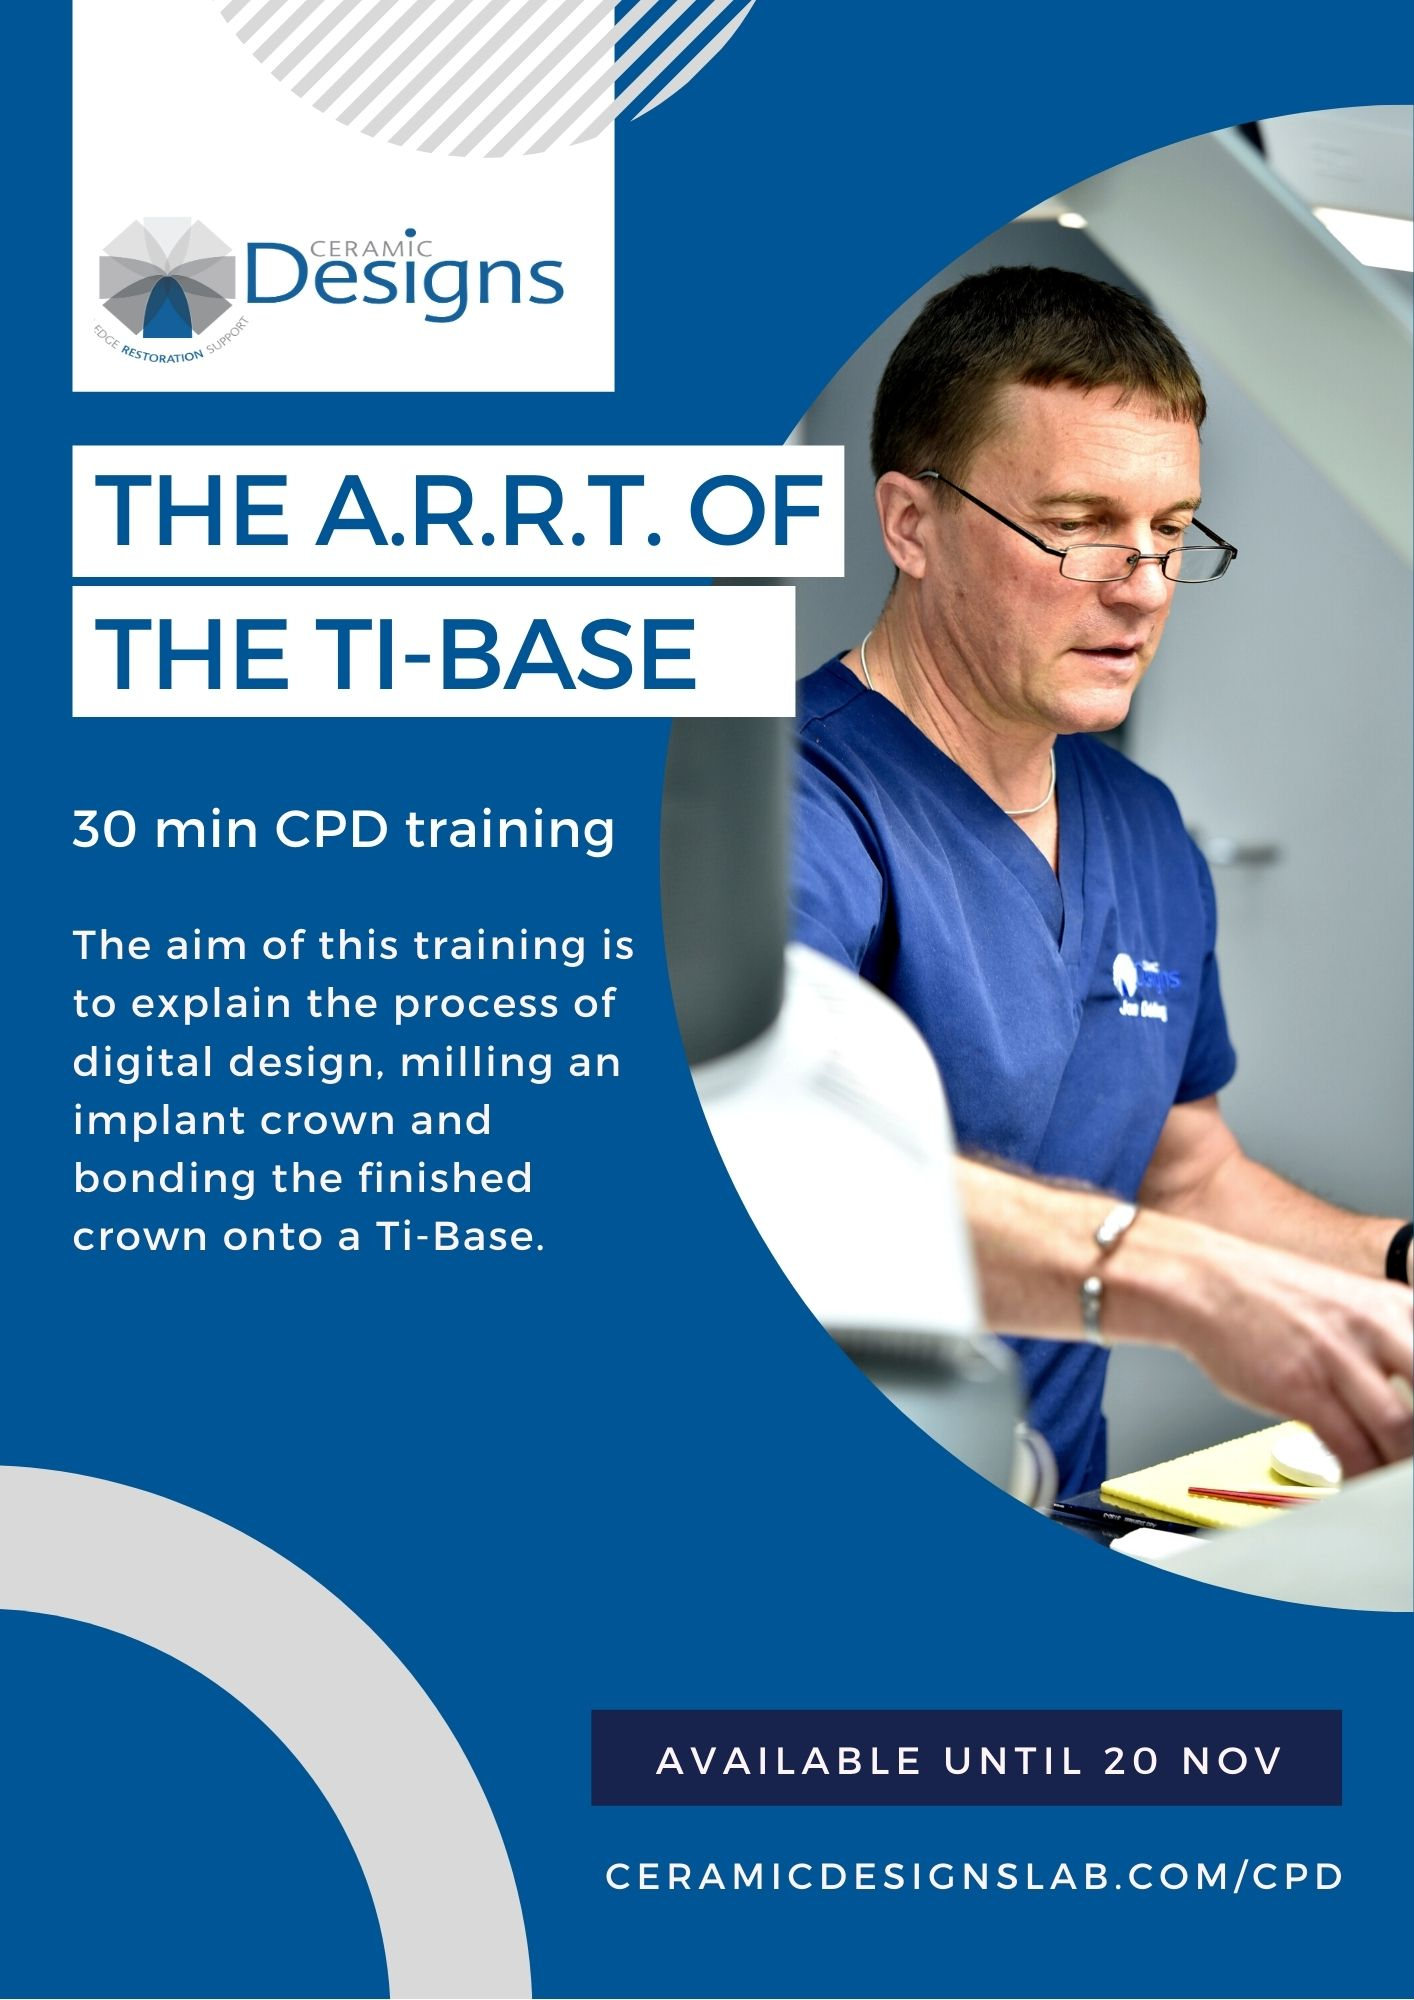 Jon CPD-the art of the ti-base